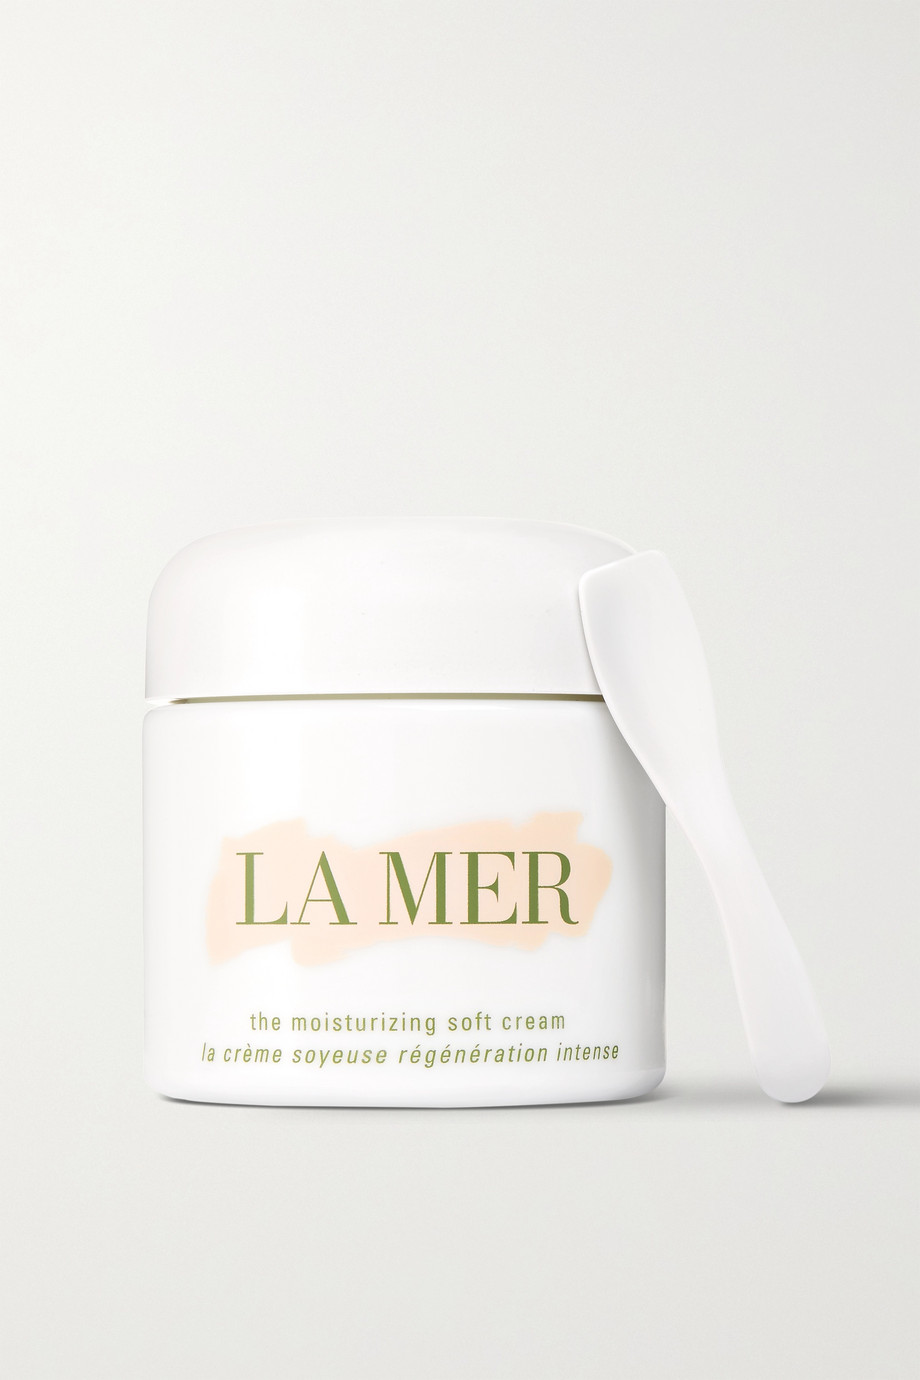 La Mer The Moisturizing Soft Cream, 100ml